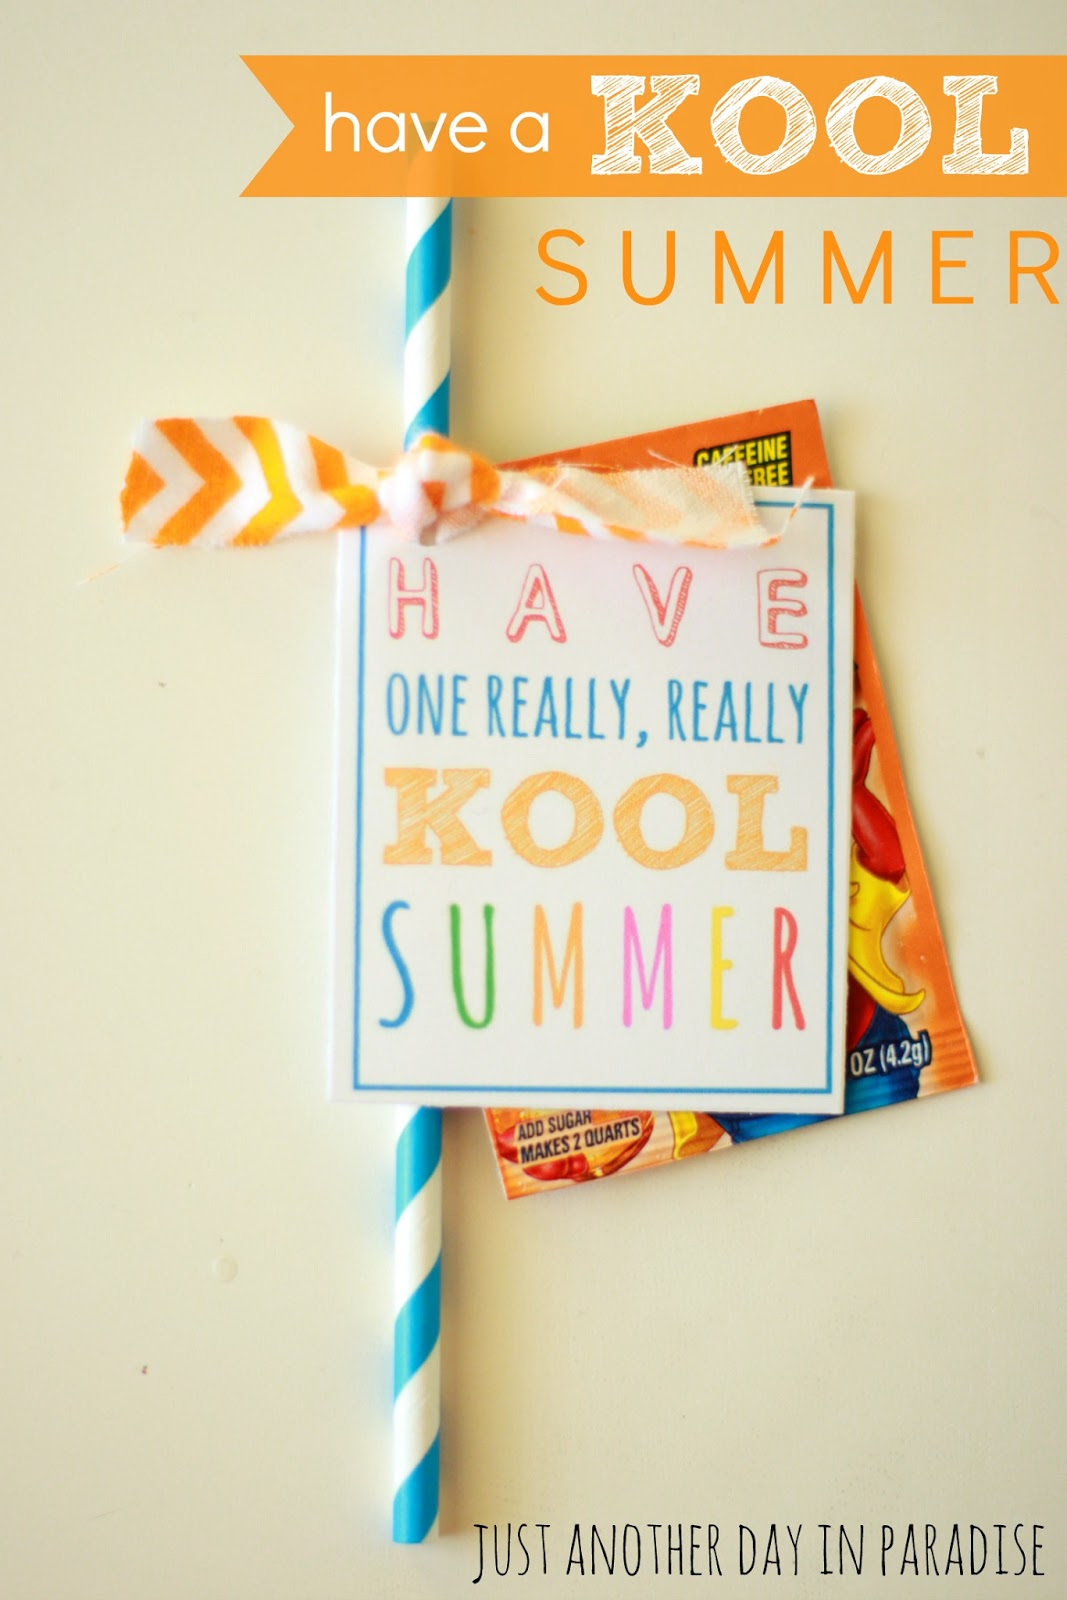 Vibrant image with regard to have a kool summer printable